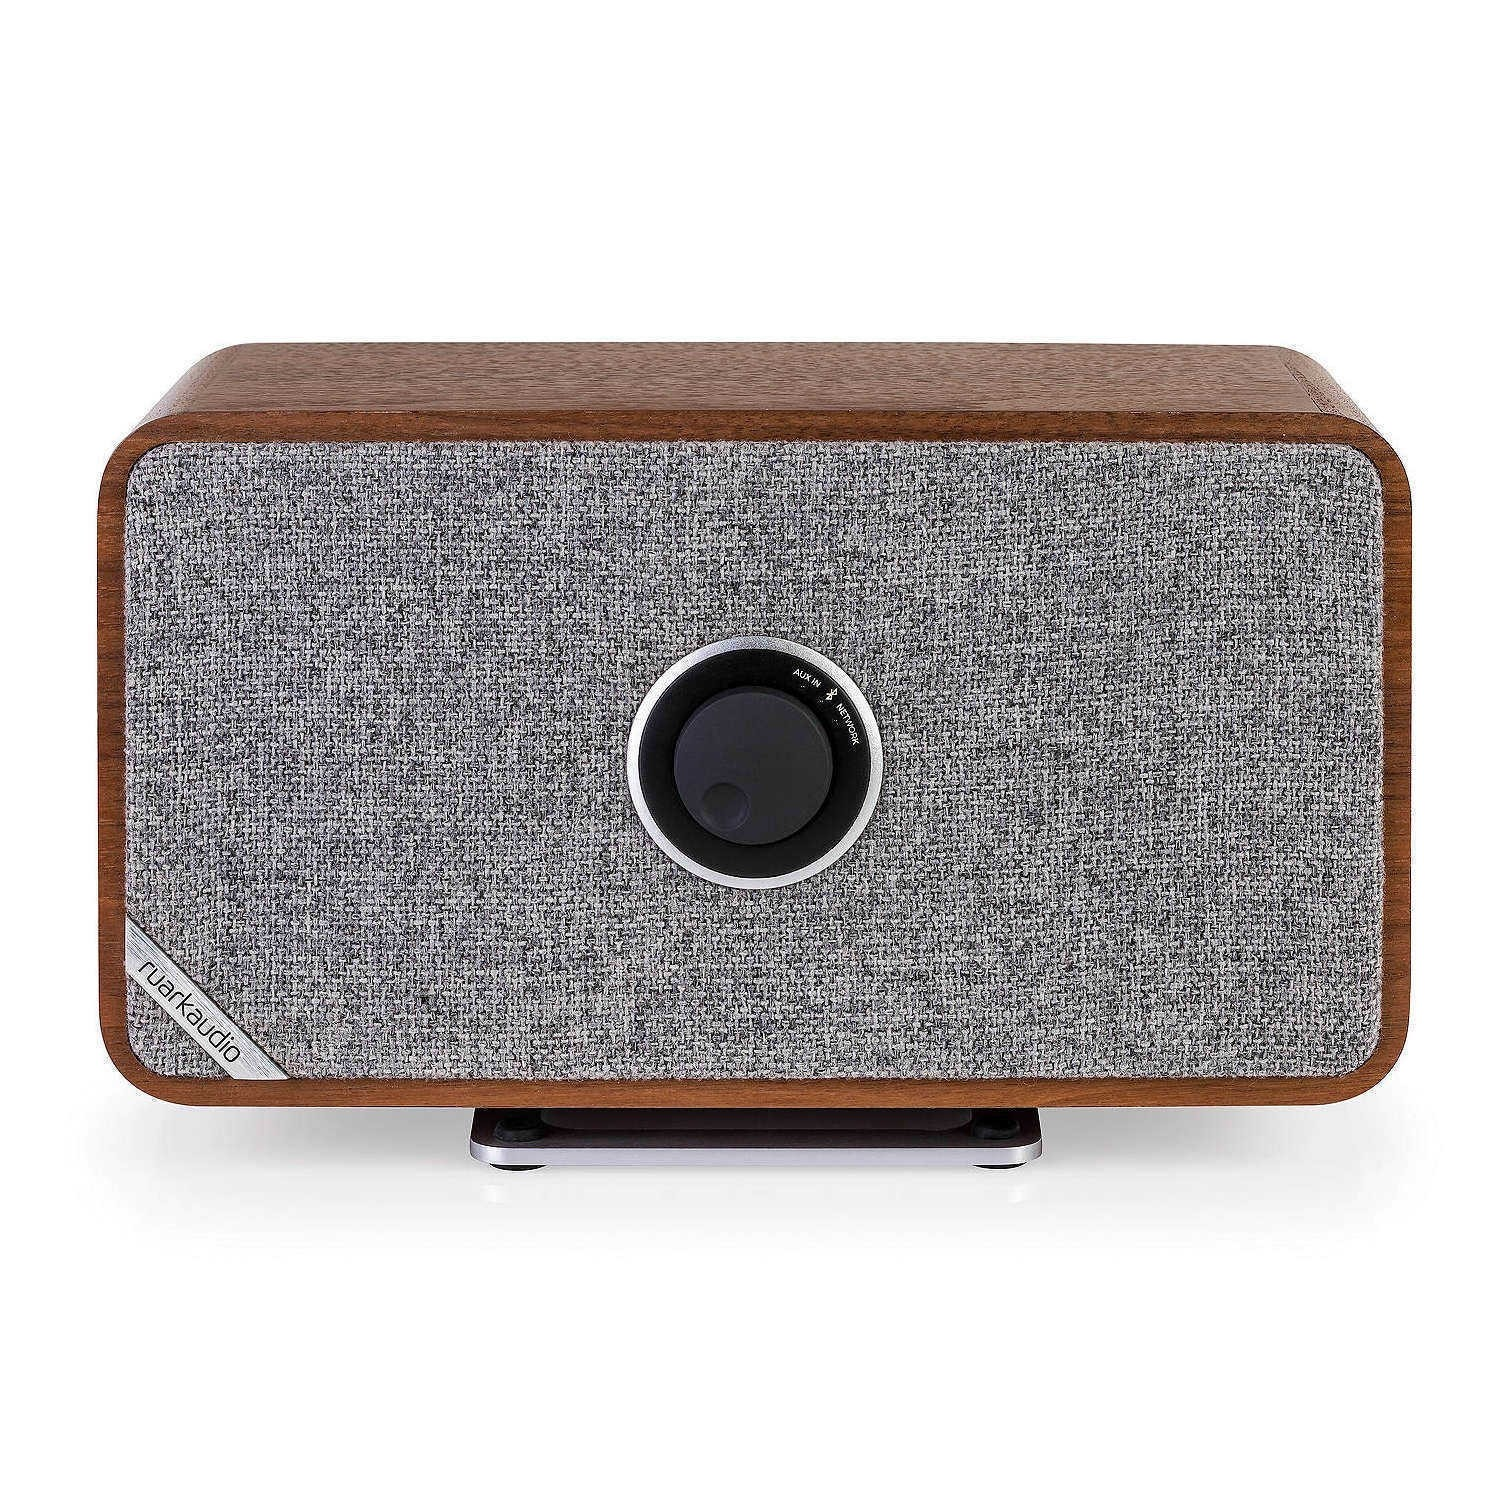 Ruark MRx Bookshelf Speaker With AptX Bluetooth Connectivity Display Gallery Item 1 2